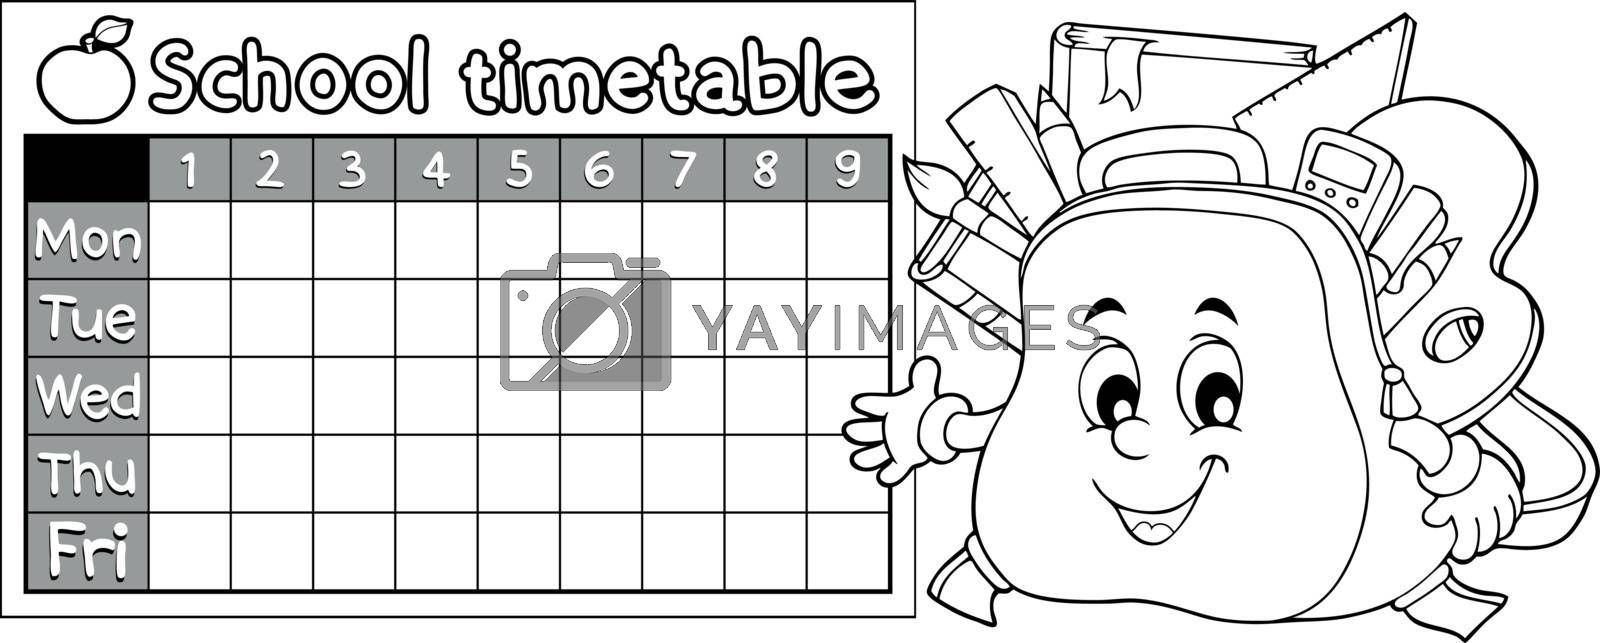 Coloring book timetable topic 9 - eps10 vector illustration.